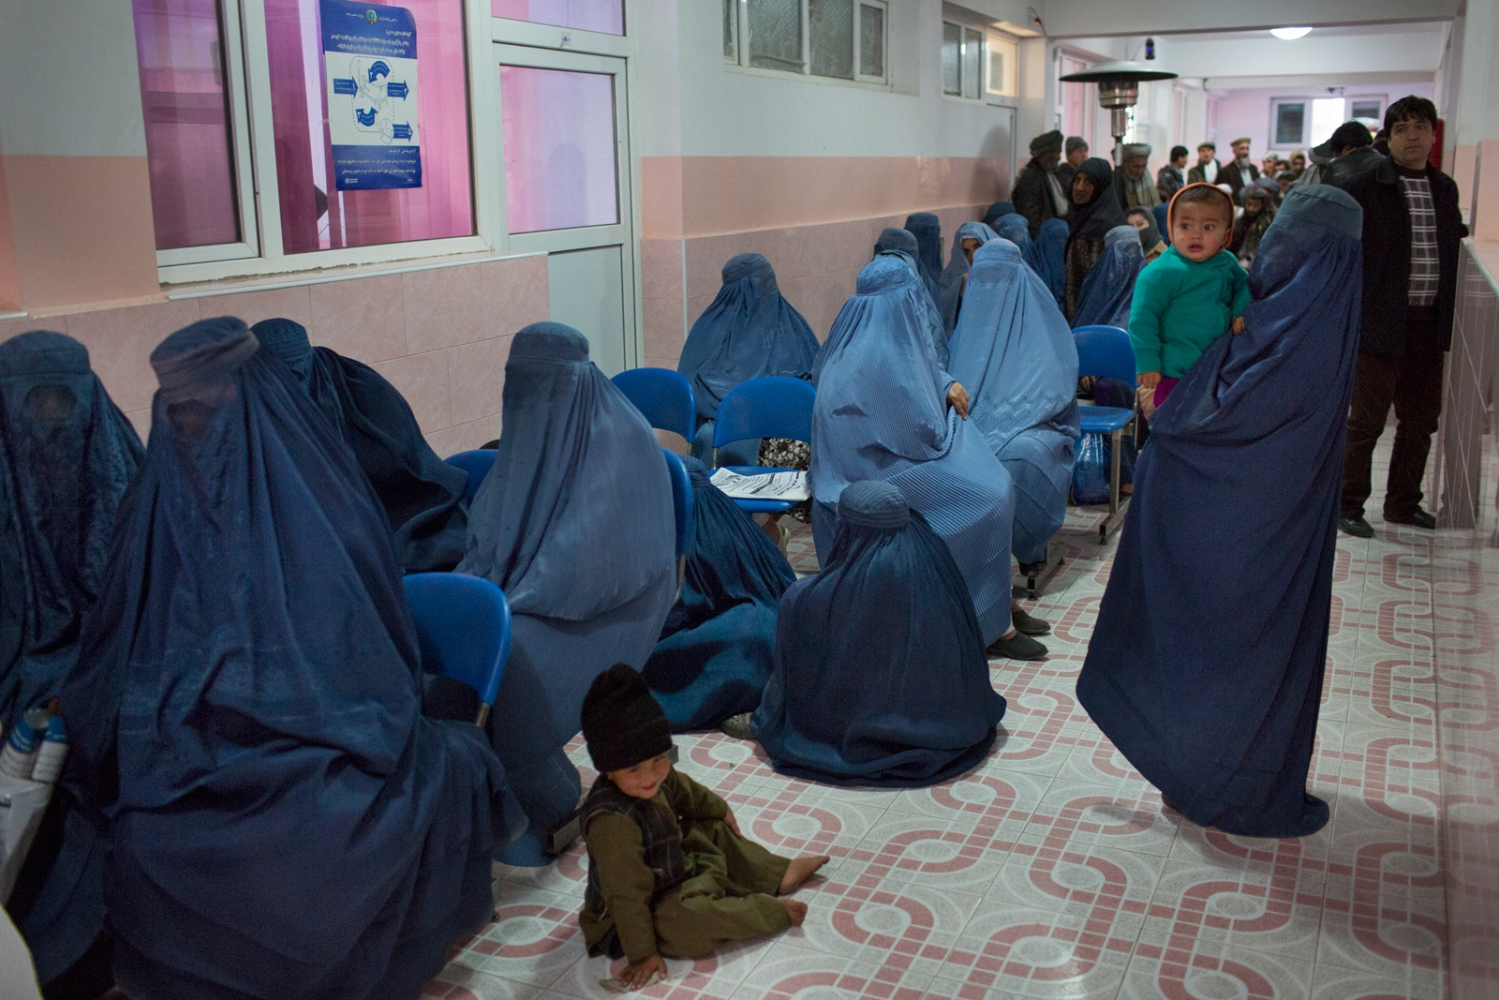 Waiting room for outpatients in Alemi's hospital. Doctor Alemi and his junior doctors see up to 120 patients a day, 6 days a week. Many travel long distances to be here, some as many as 700 kilometers. Mazar e Sharif, Afghanistan. December 2015.